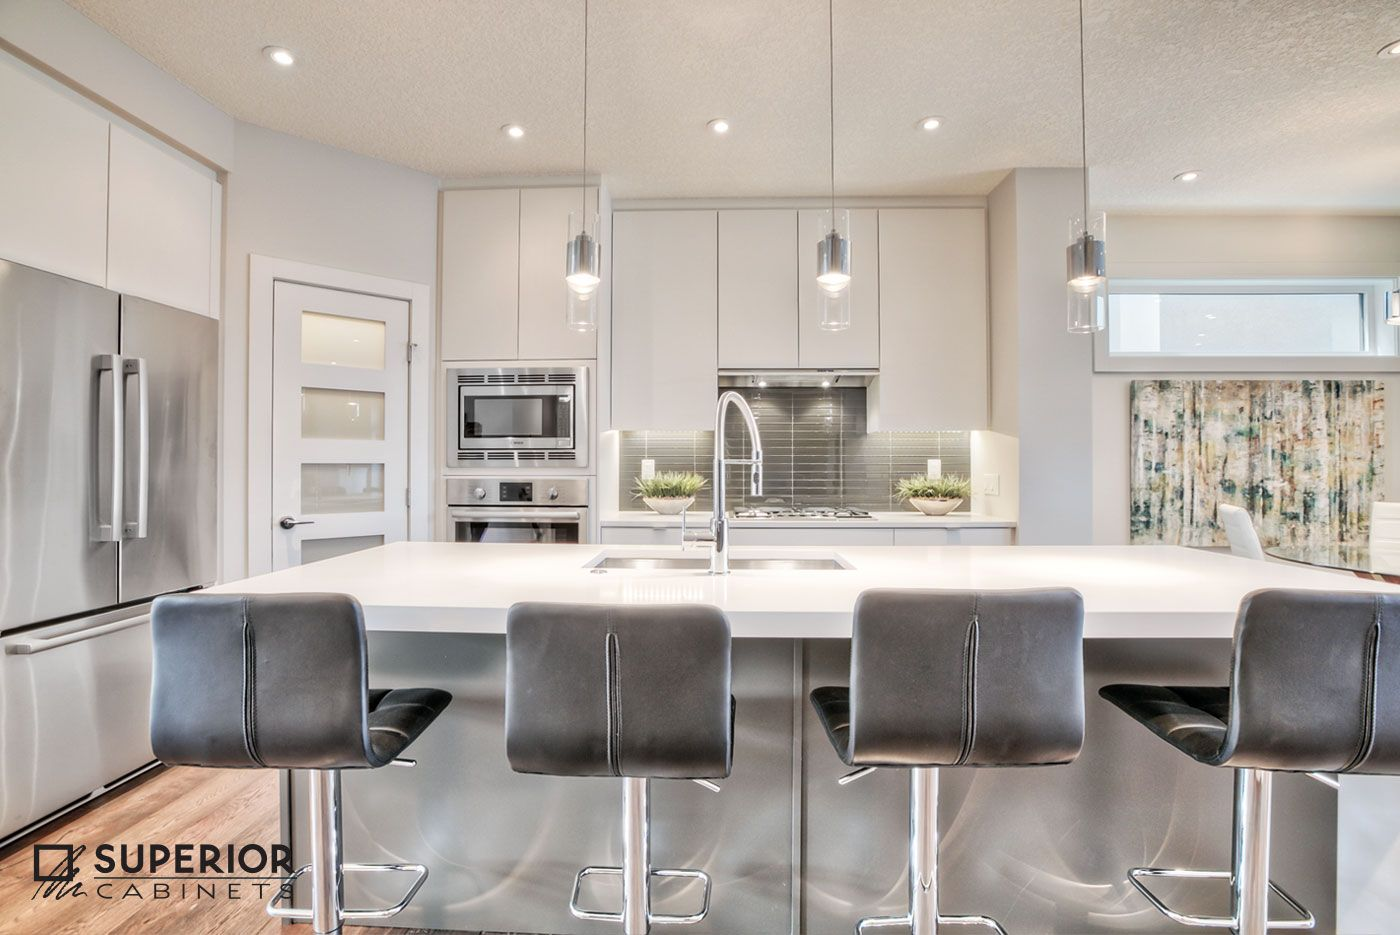 Designer Jasmine Larre Superior Cabinets Calgary Builder Treehouse Developments Calgary Finish Fusi Superior Cabinets Best Kitchen Designs Kitchen Photos